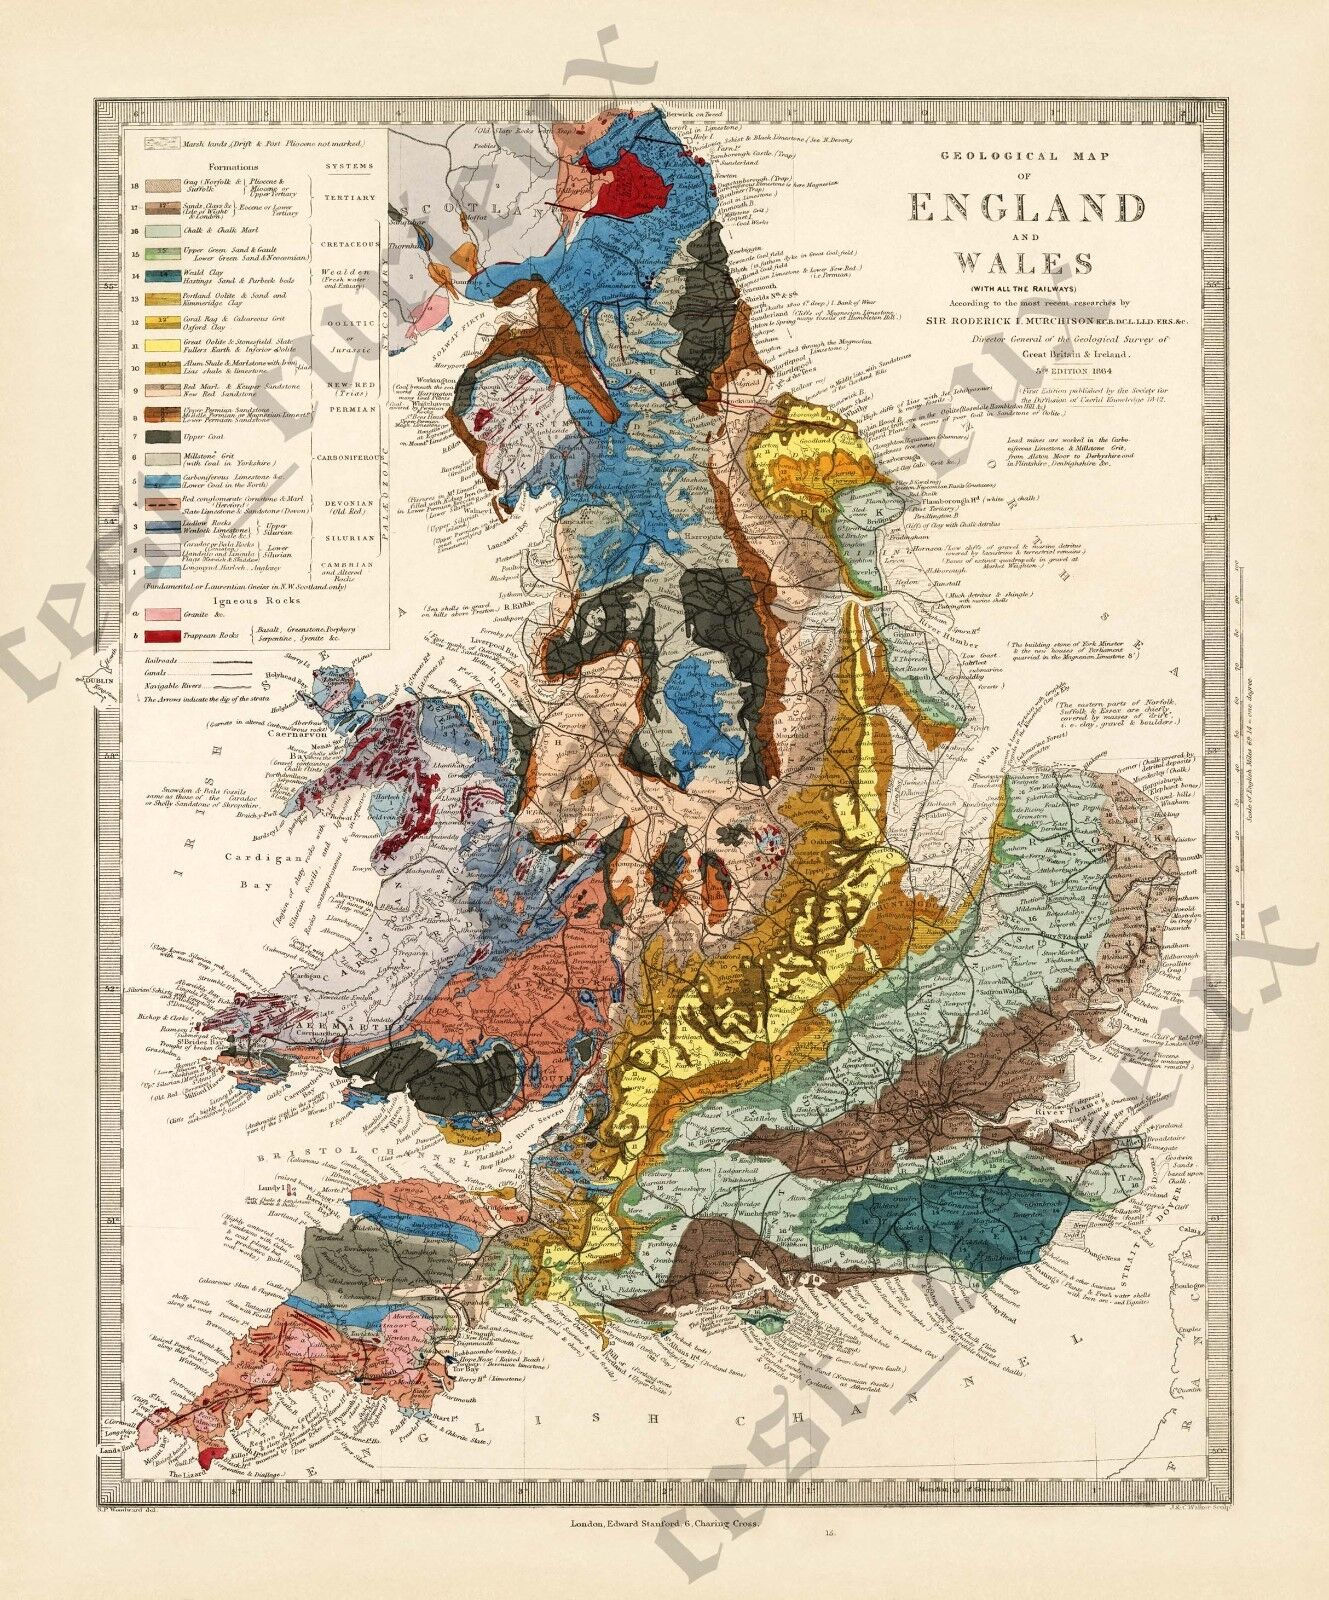 Geological map England & Wales R Murchison 1842 British geology art poster